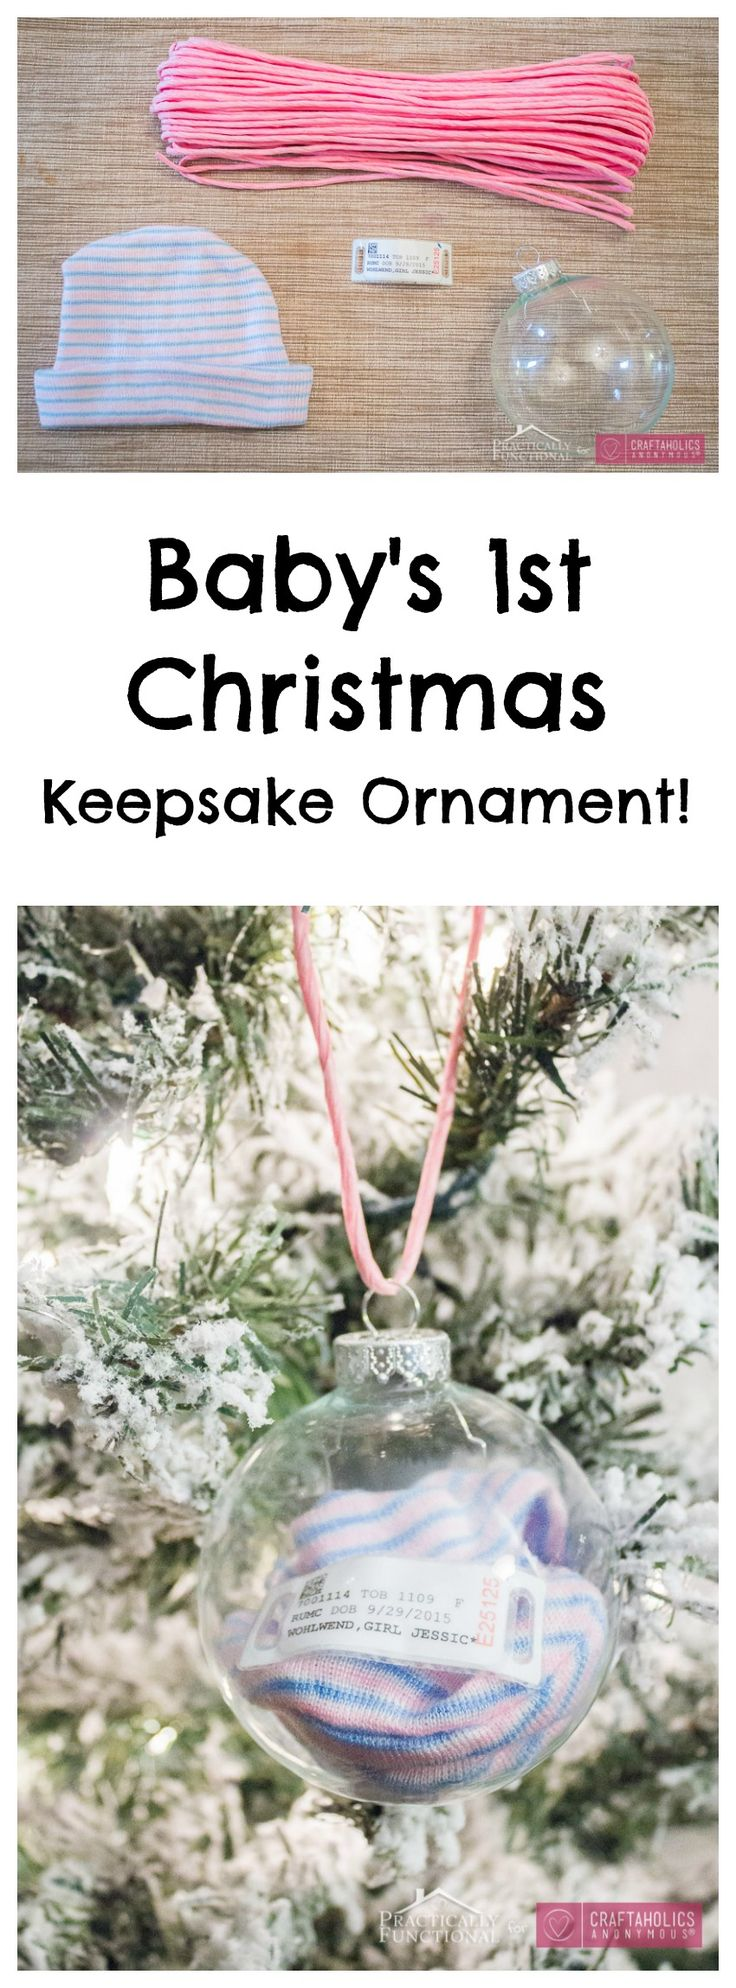 Handmade Baby's First Christmas Ornament idea + awesome keepsake! This is one that will be treasured forever!